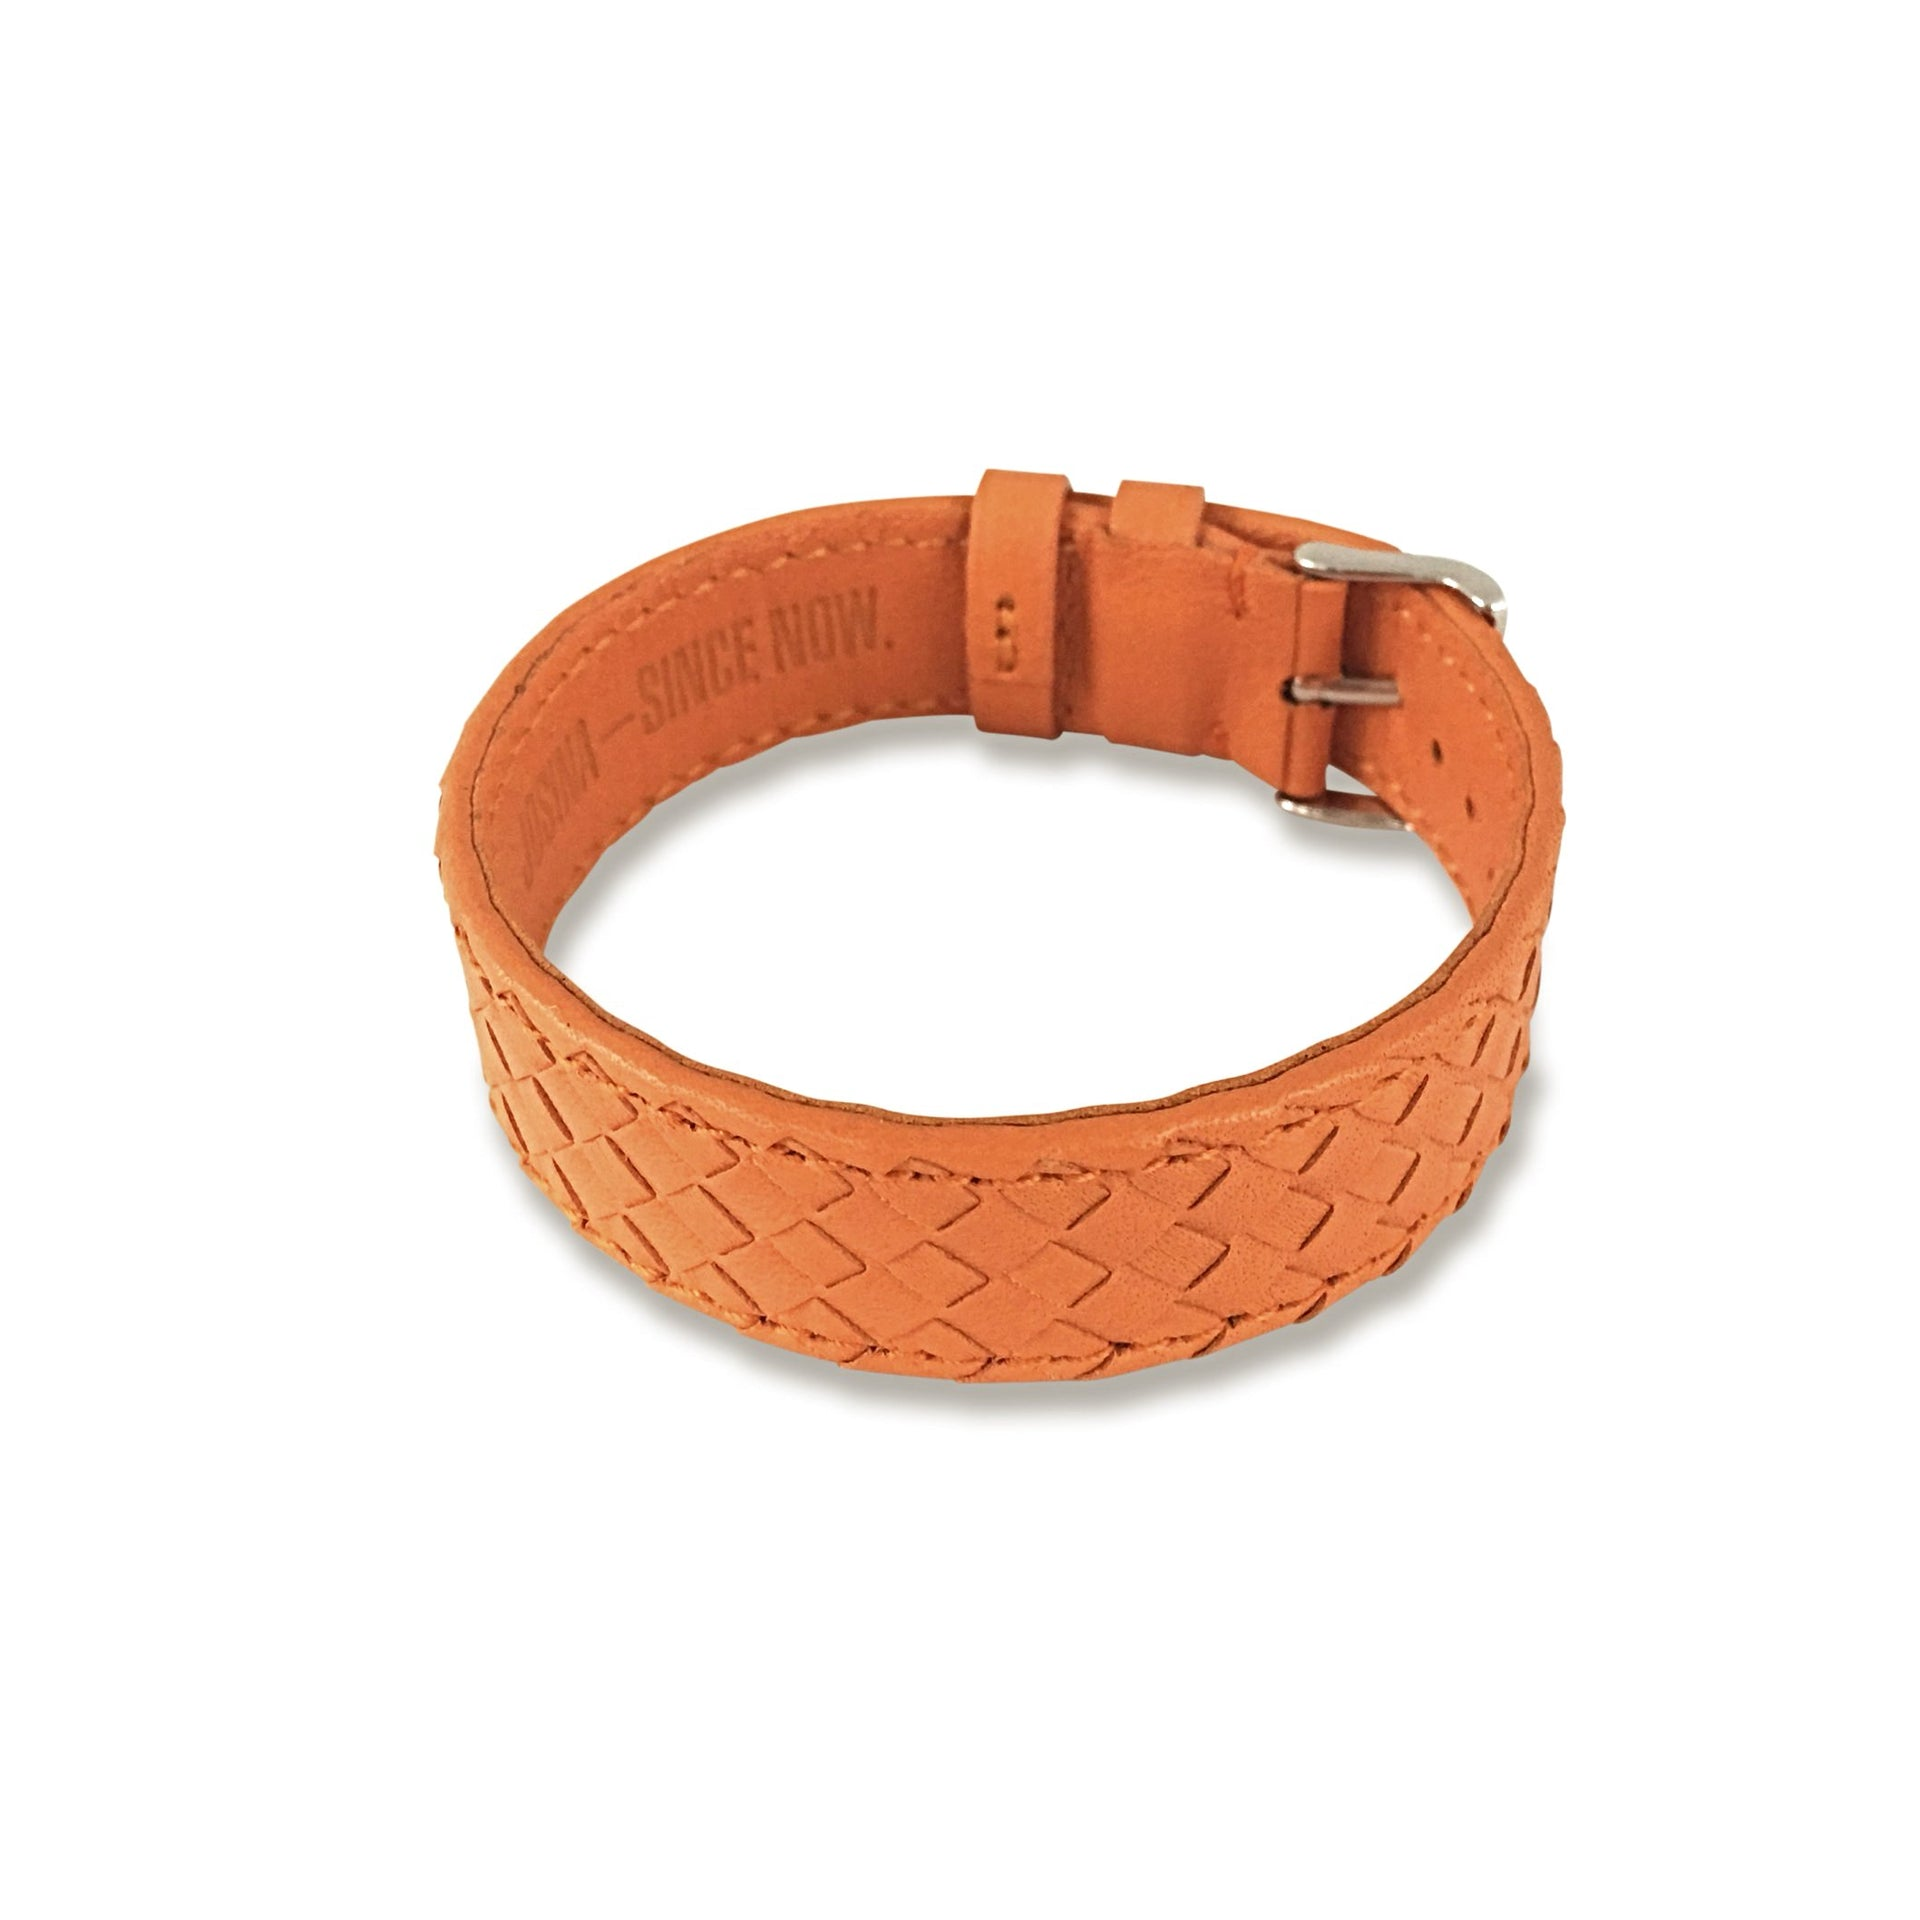 Embracelet woven Orange with 18k gold buckle